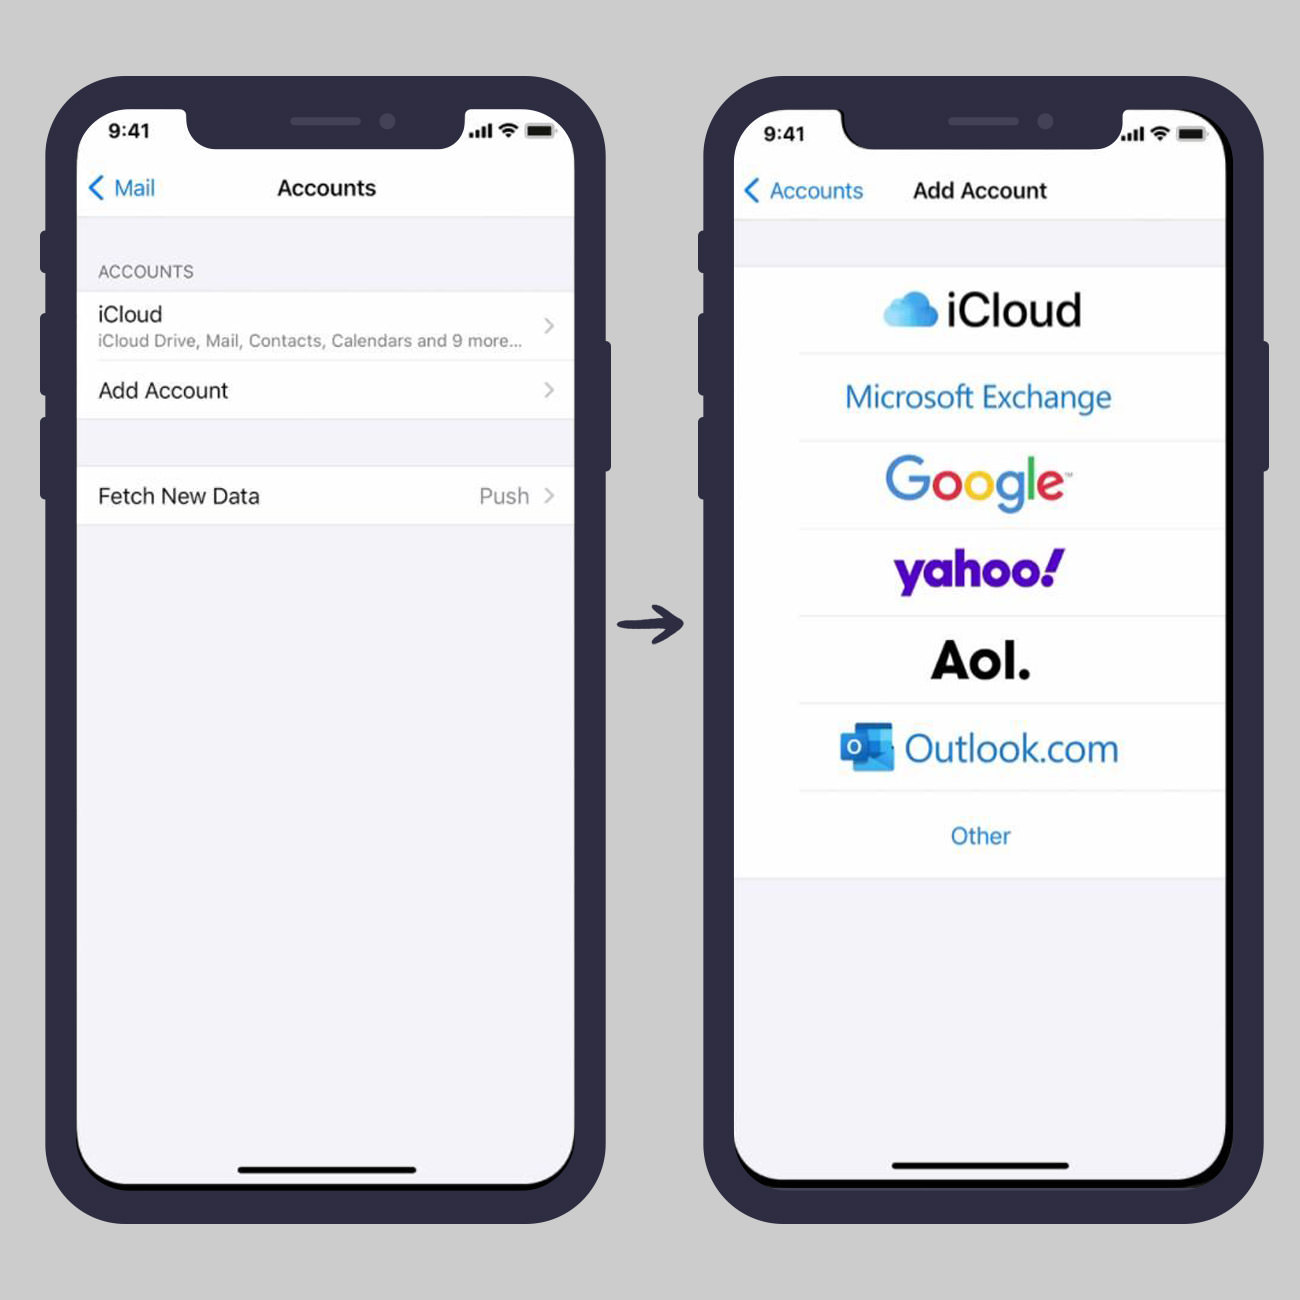 Add a Google or Gmail account in iOS